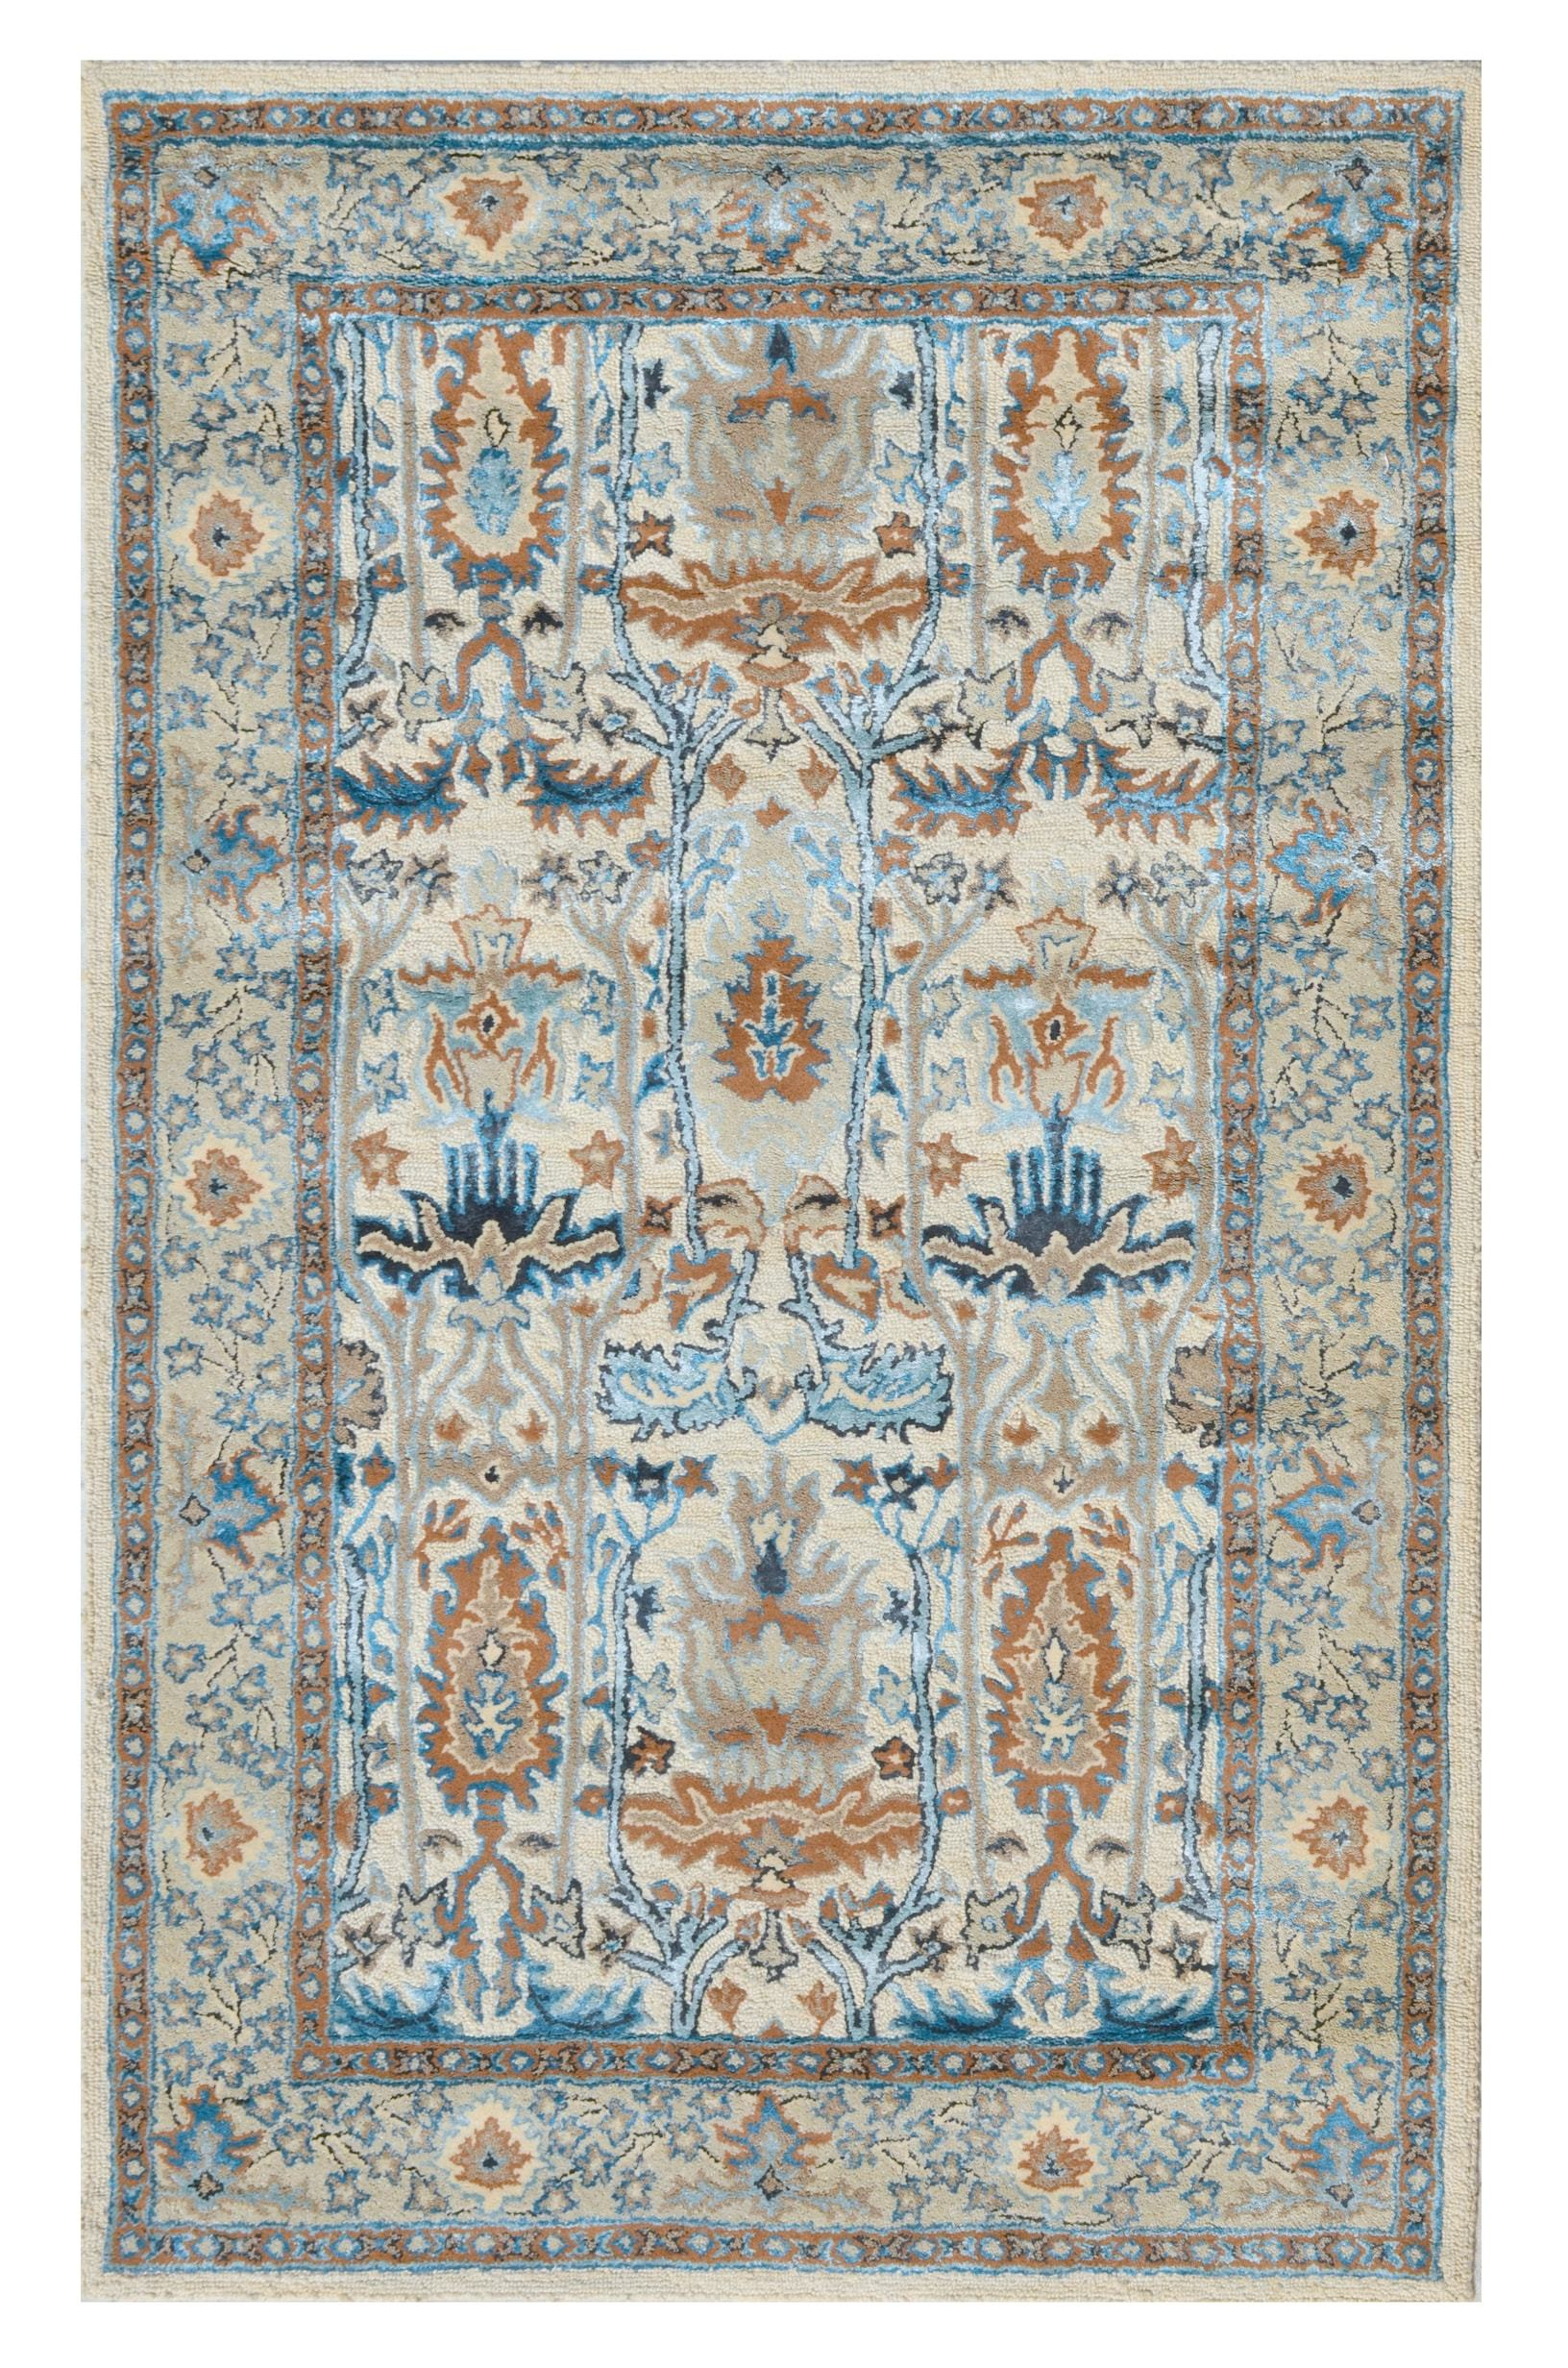 Niran Hand Tufted Rug by House of Rugs - Home Artisan